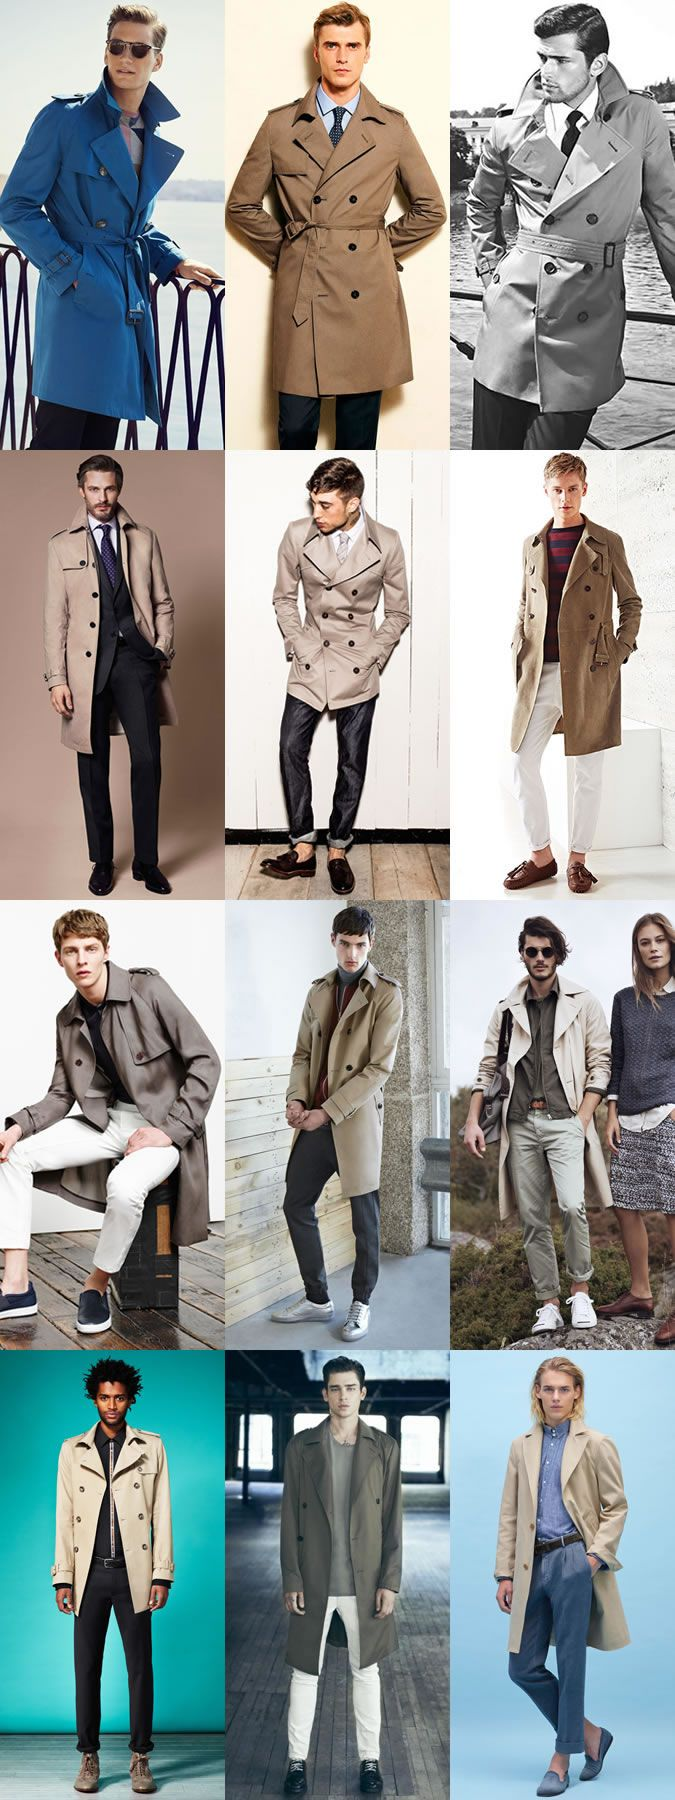 Men's Key Spring Jackets And How To Wear Them: The Trench Coat Lookbook Insp…